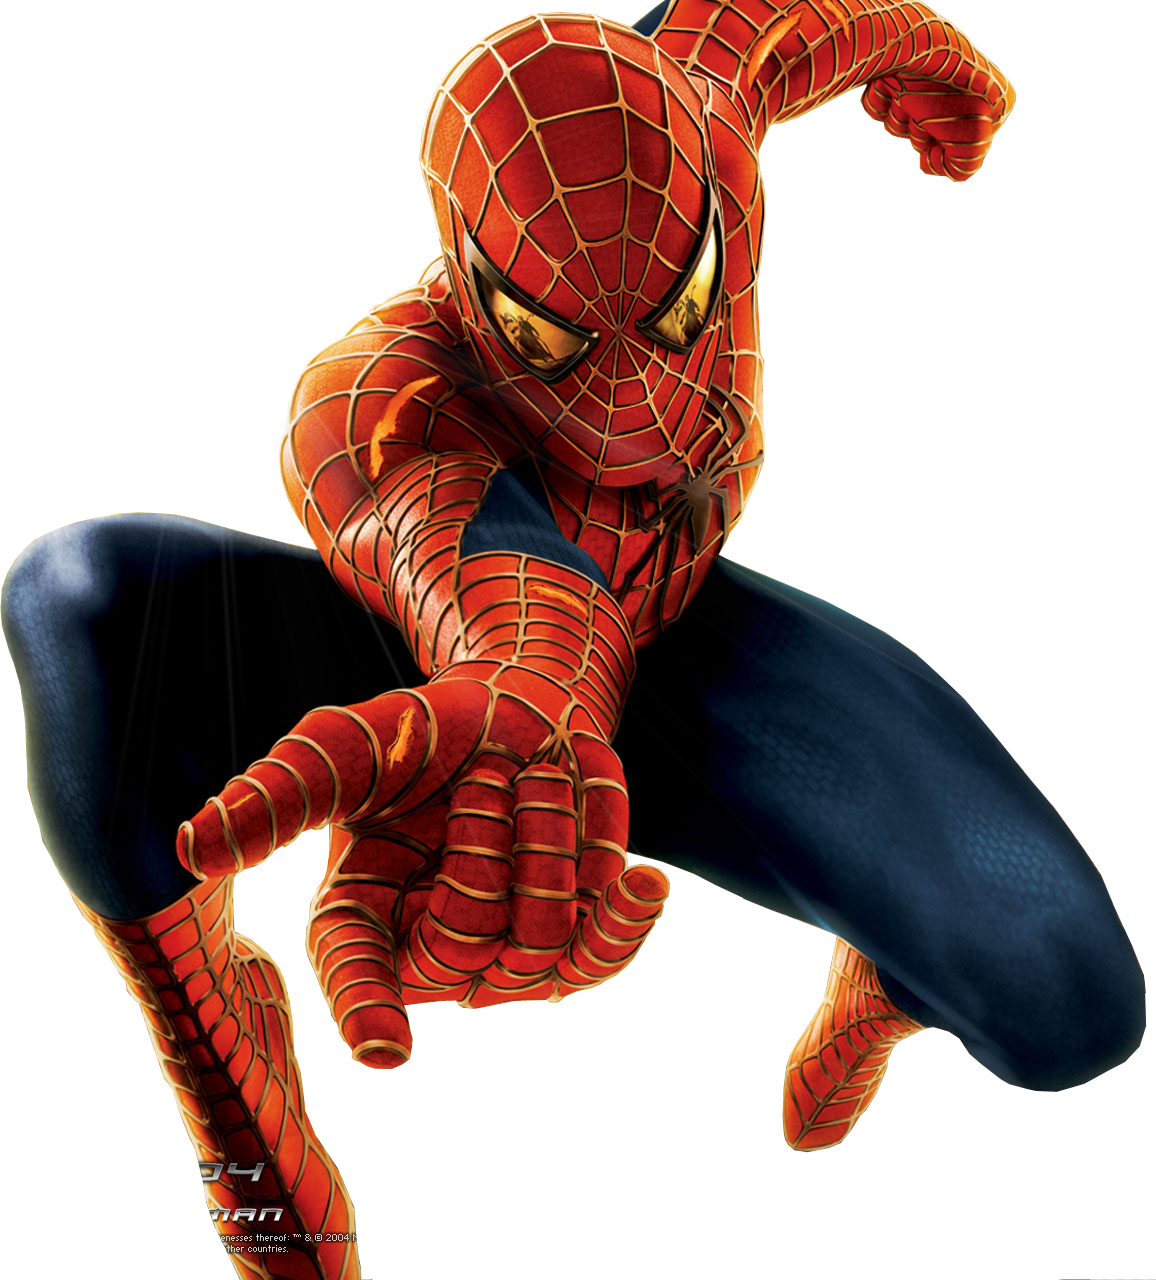 Image spiderman students wiki fandom - Image spiderman ...